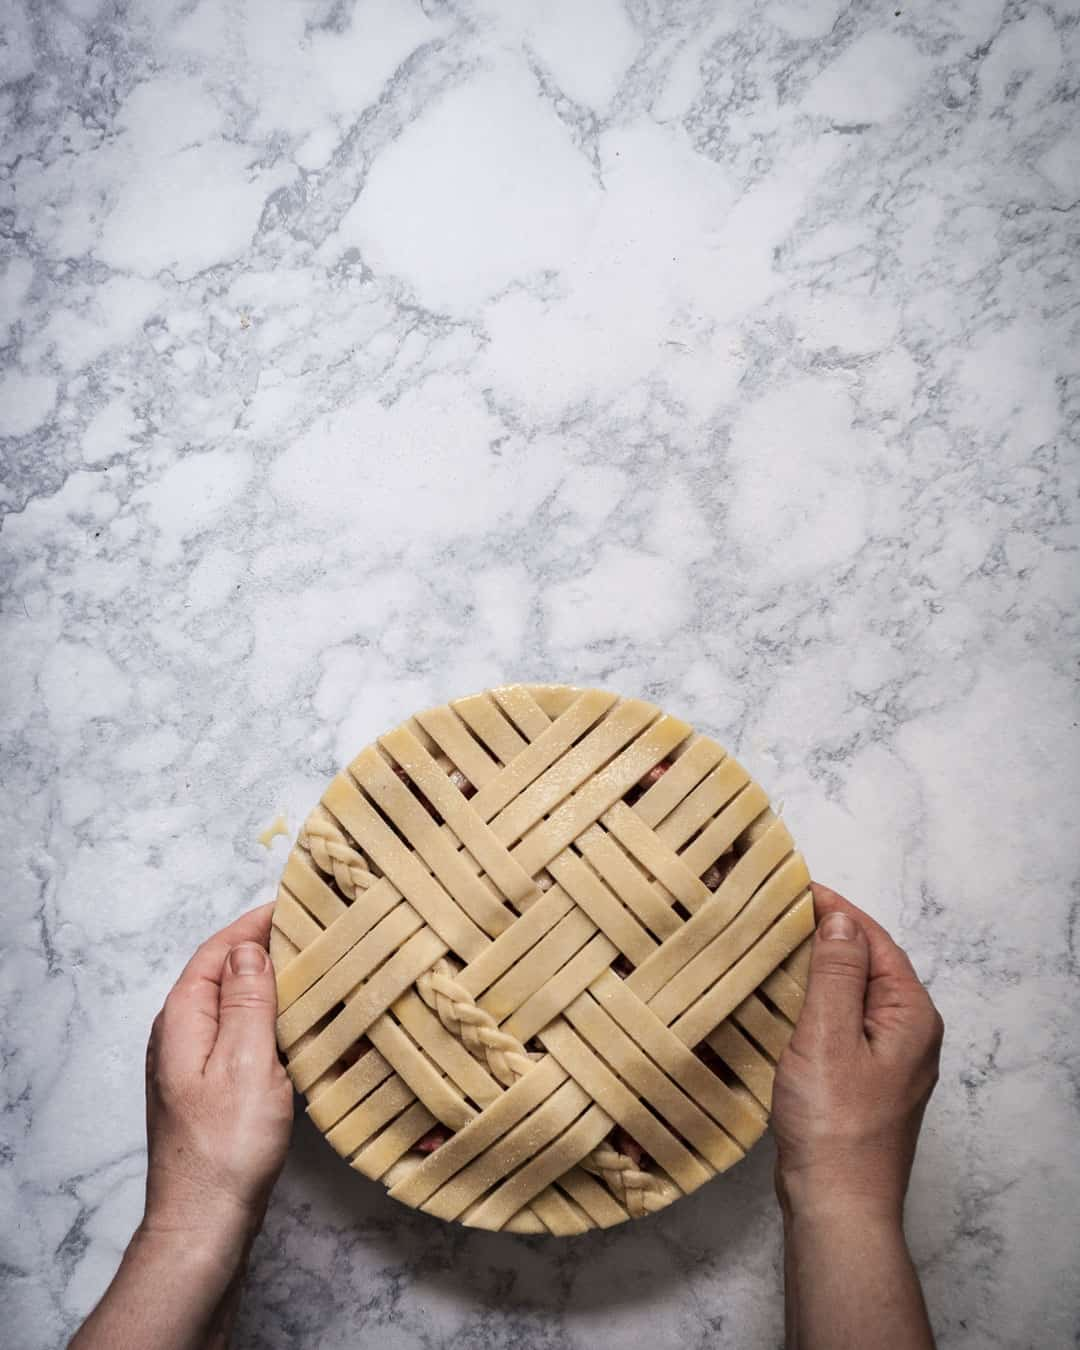 Marble surface and hands removing pie with lattice pie crust for baking